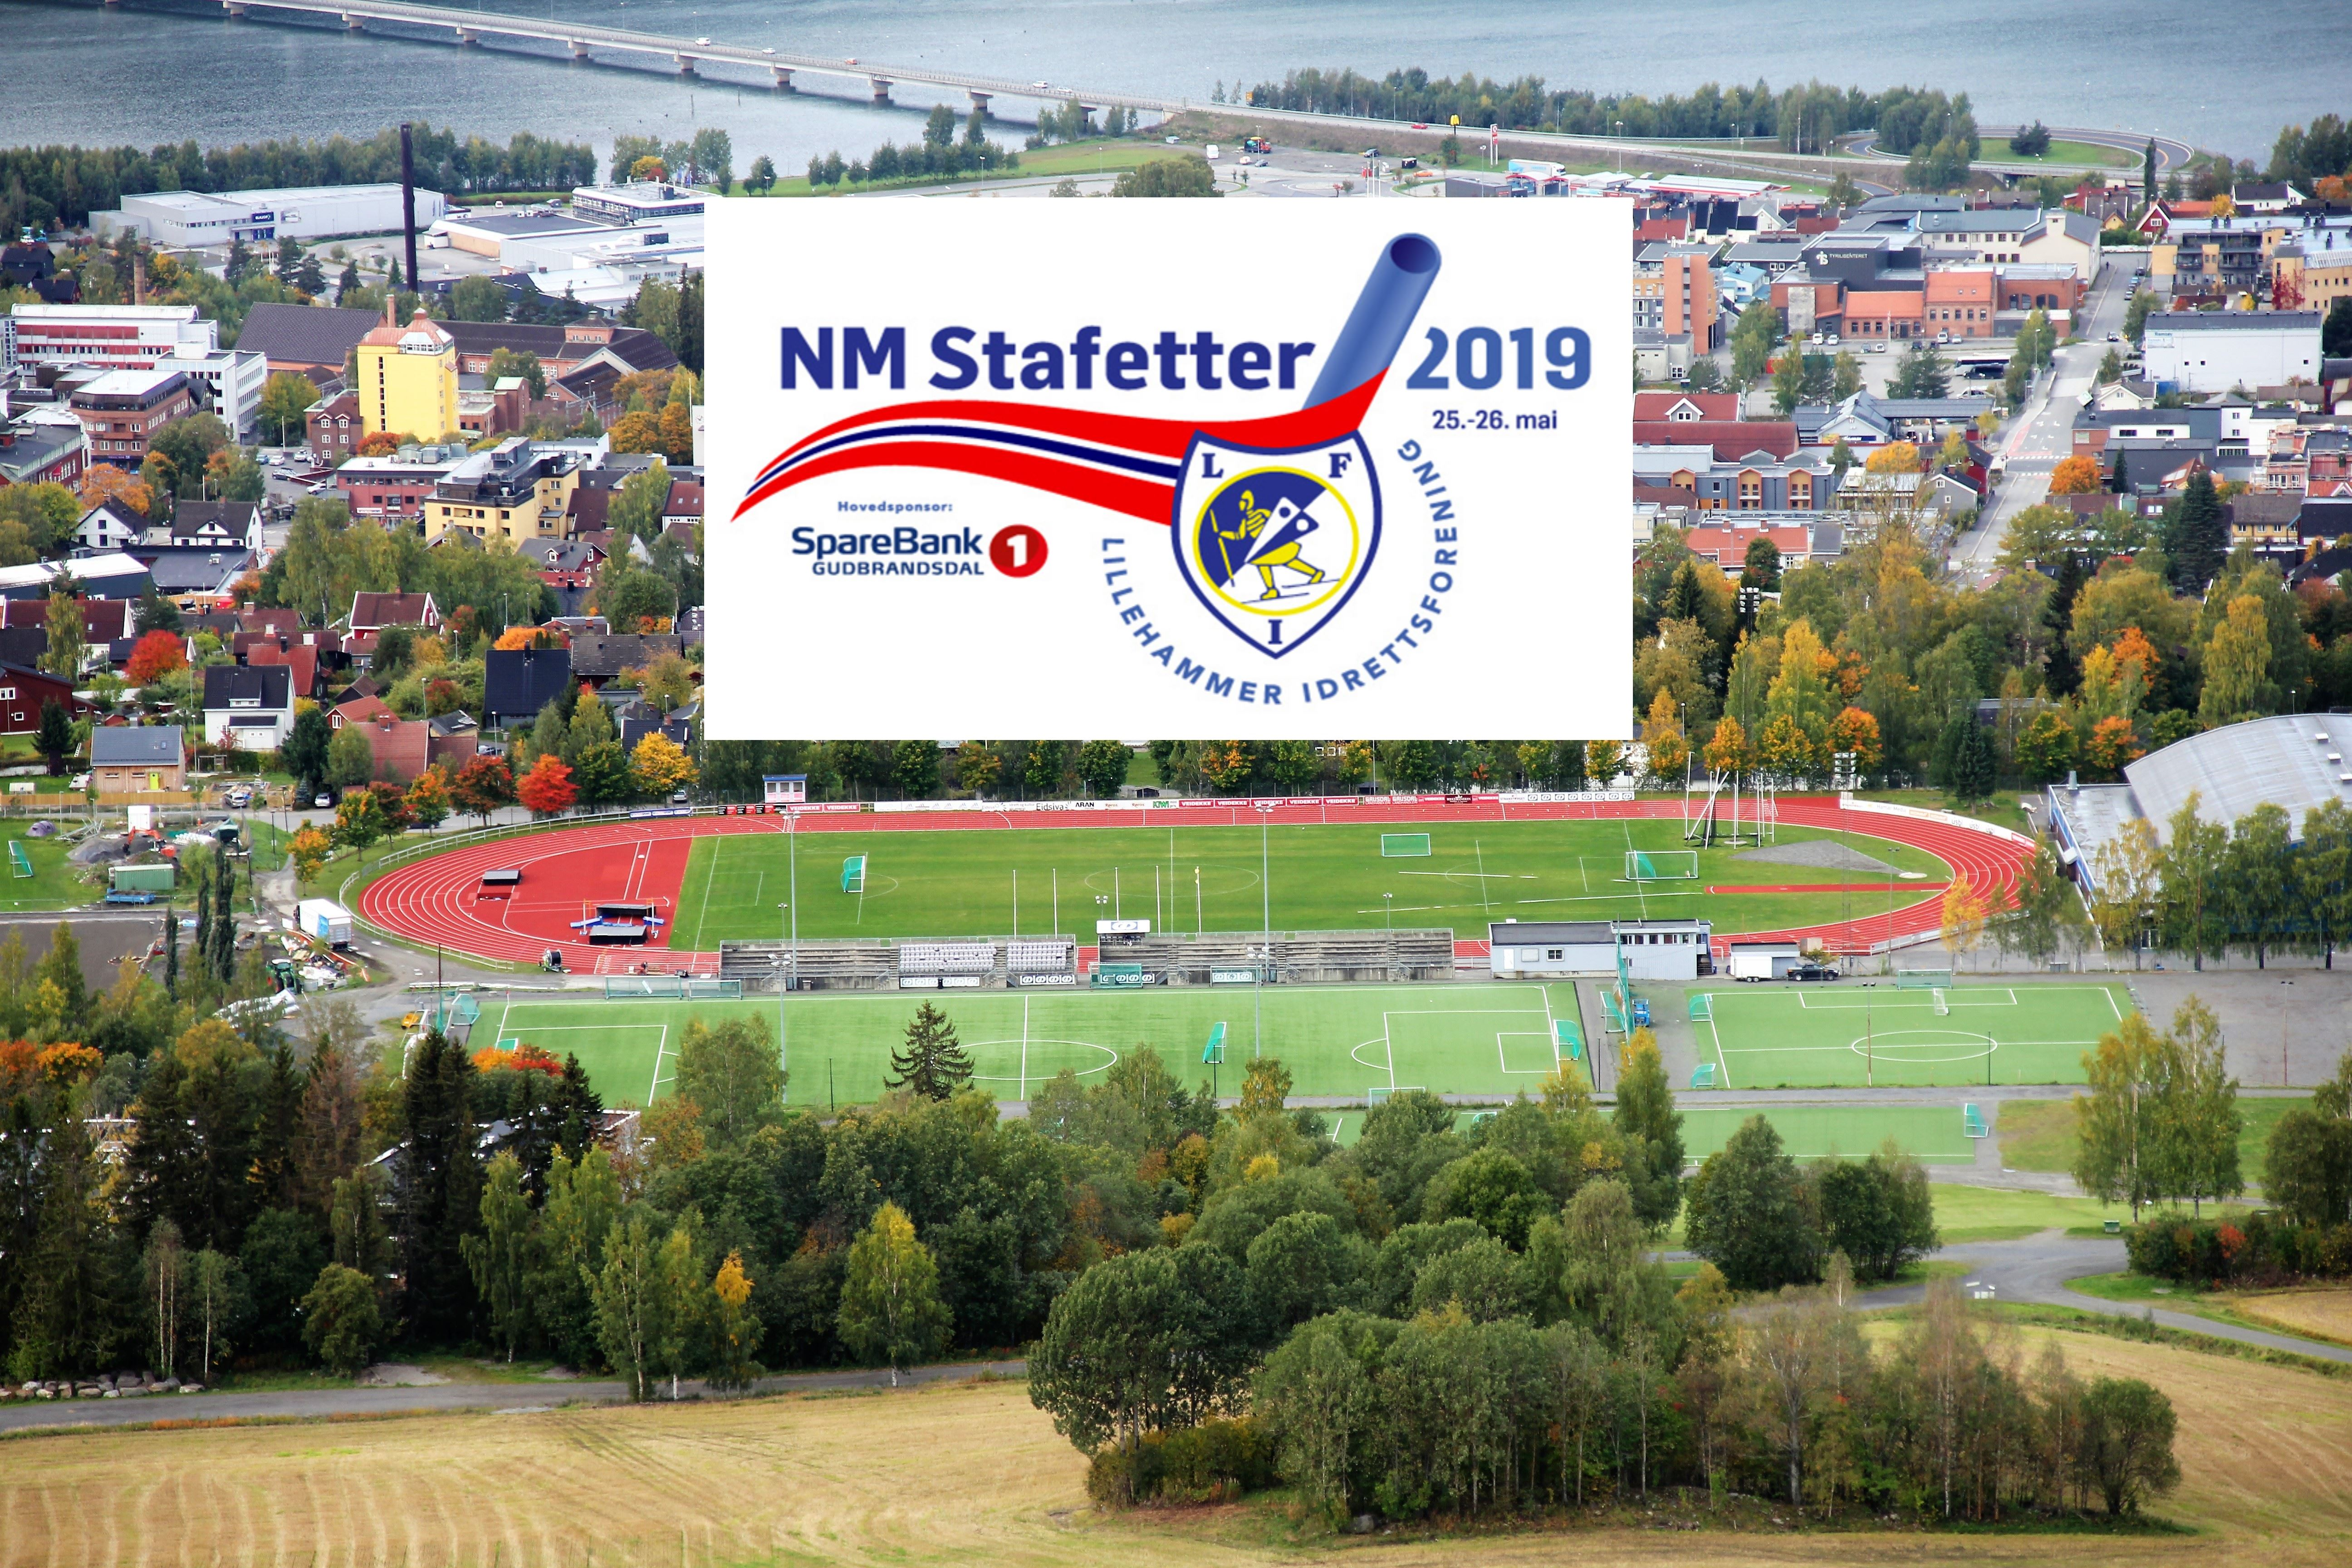 NM stafetter 2019